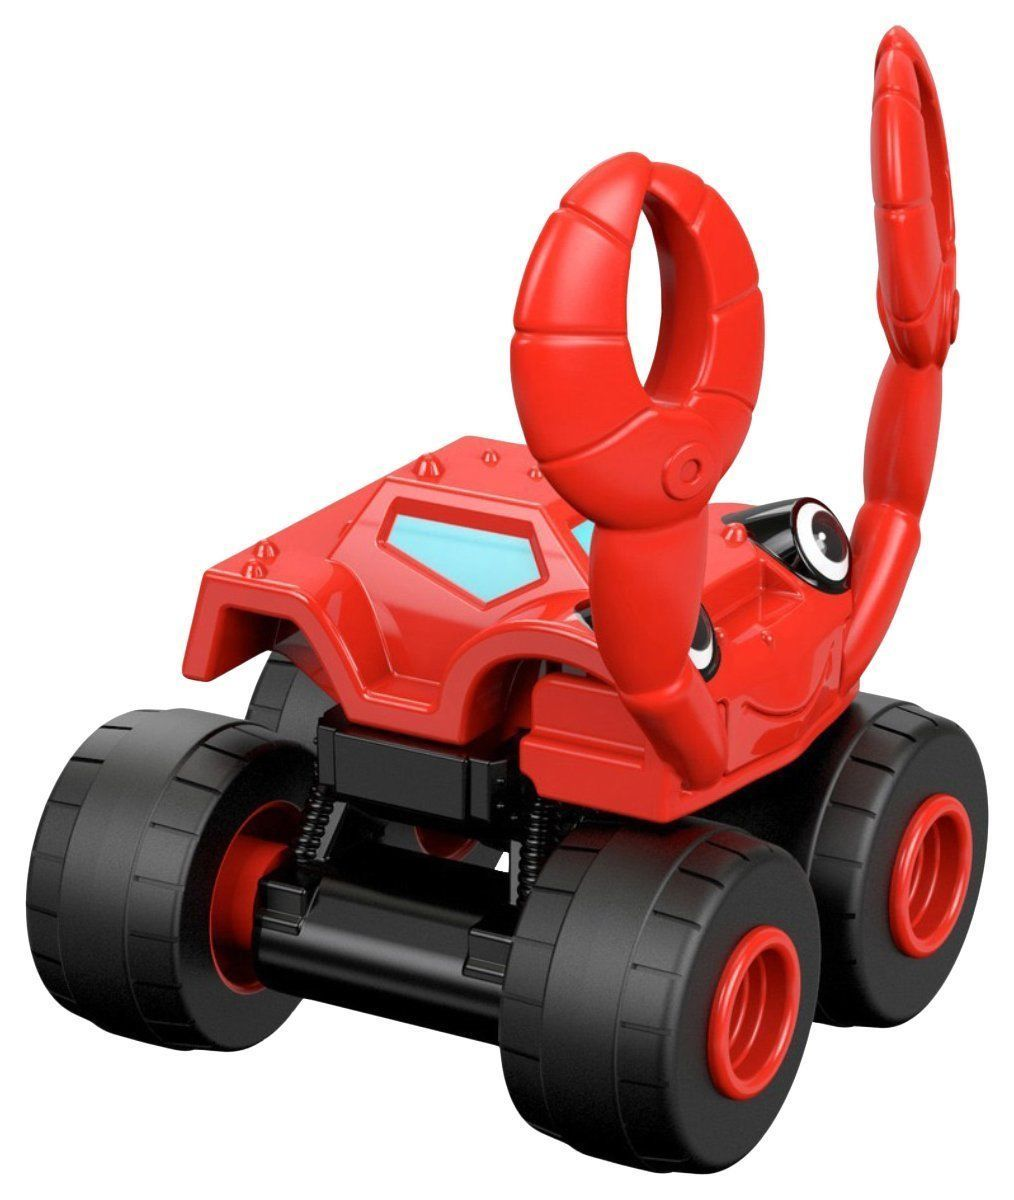 Blaze And The Monster Machines Small Animal Vehicle Crab